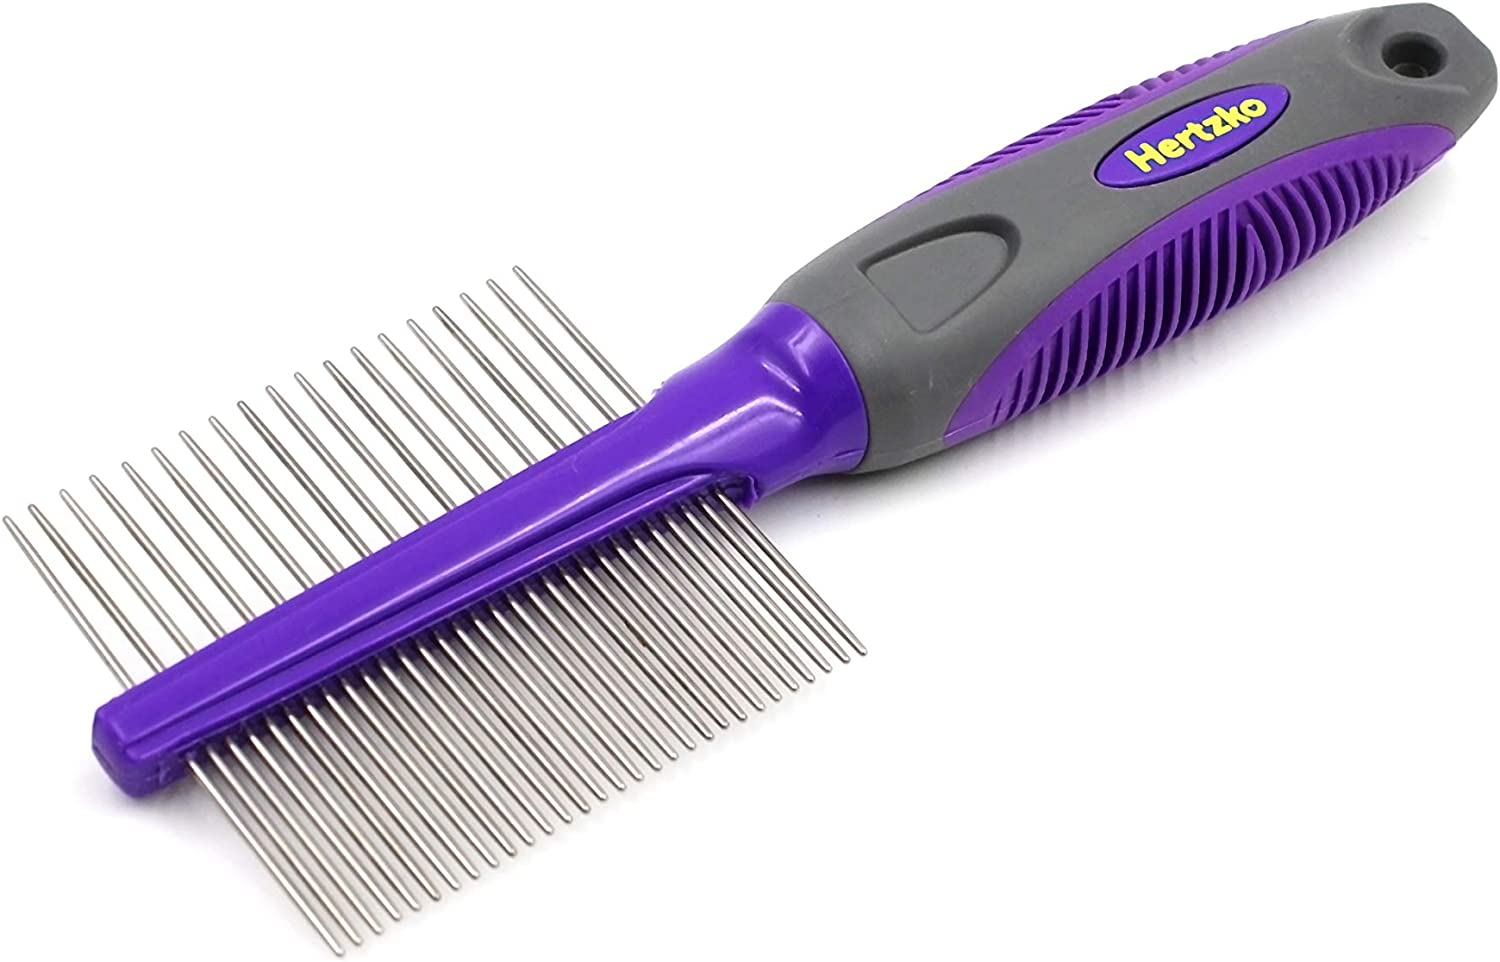 HERTZKO Double Sided Inexpensive Pet Max 86% OFF Comb Dog Cat Closel - and Grooming